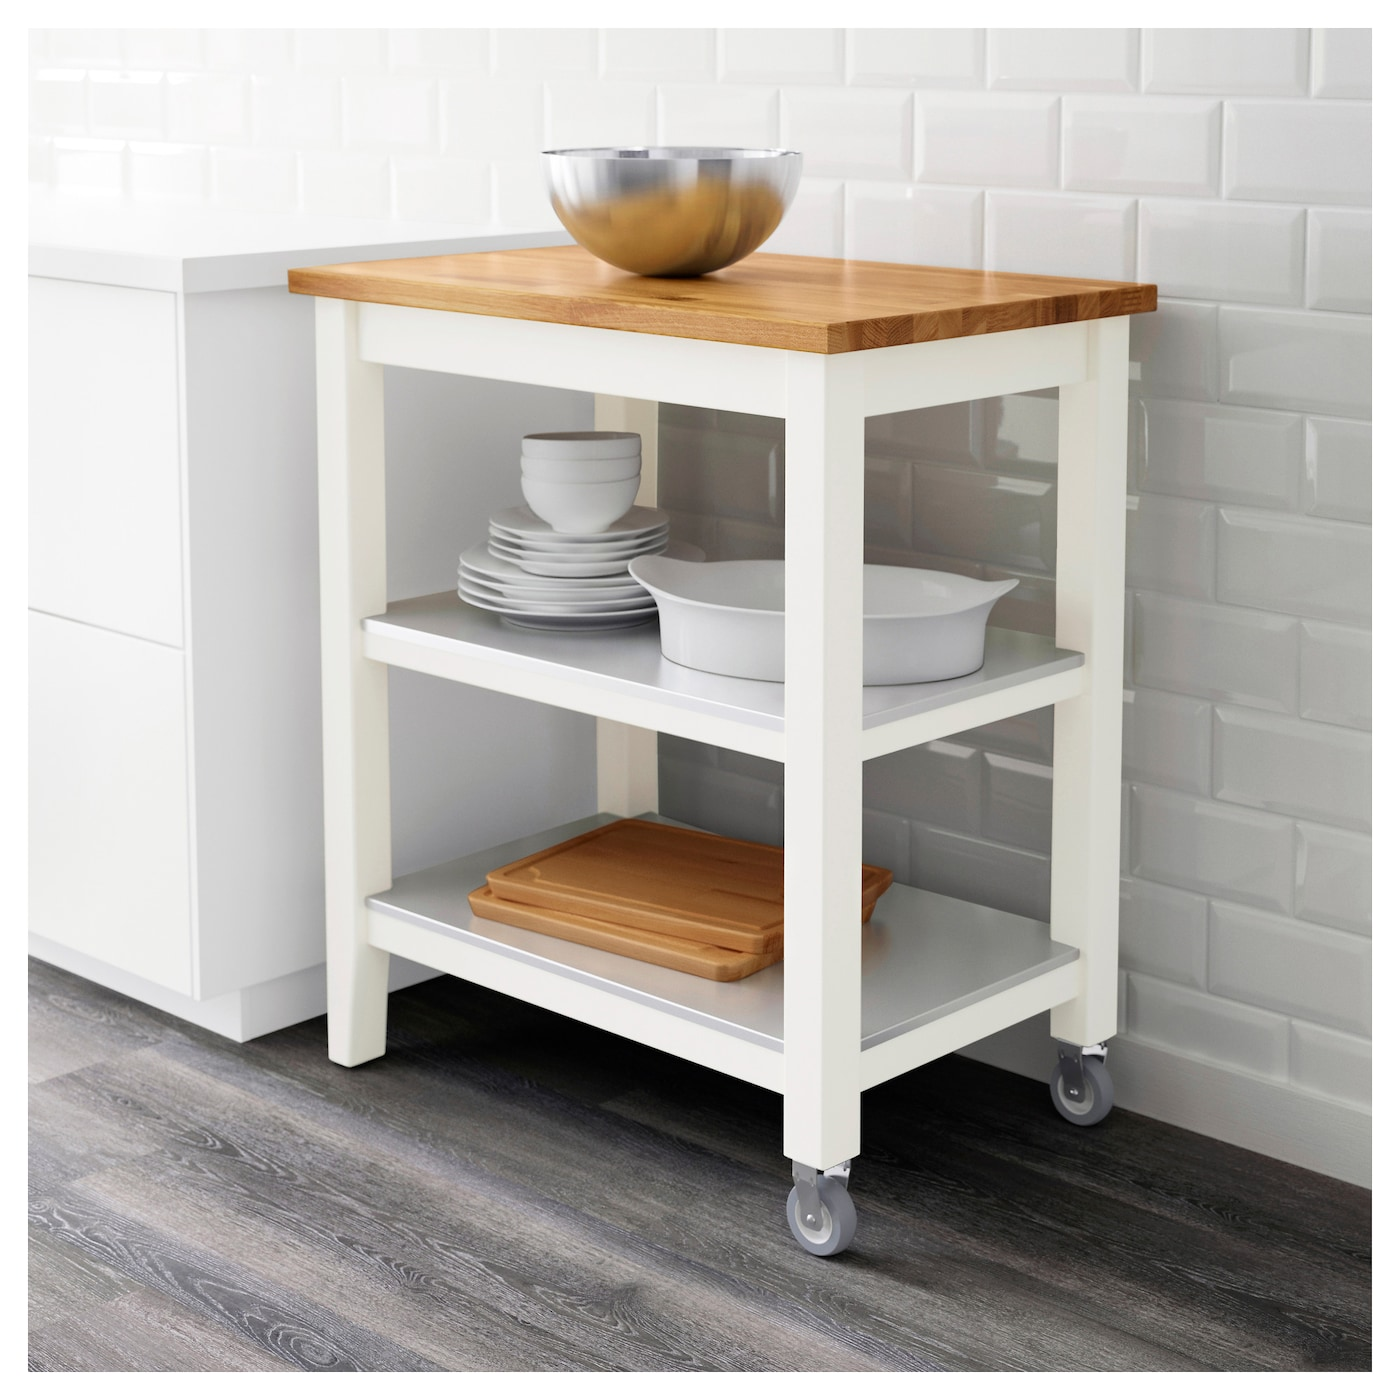 IKEA STENSTORP Kitchen Trolley Gives You Extra Storage In Your Kitchen. Design